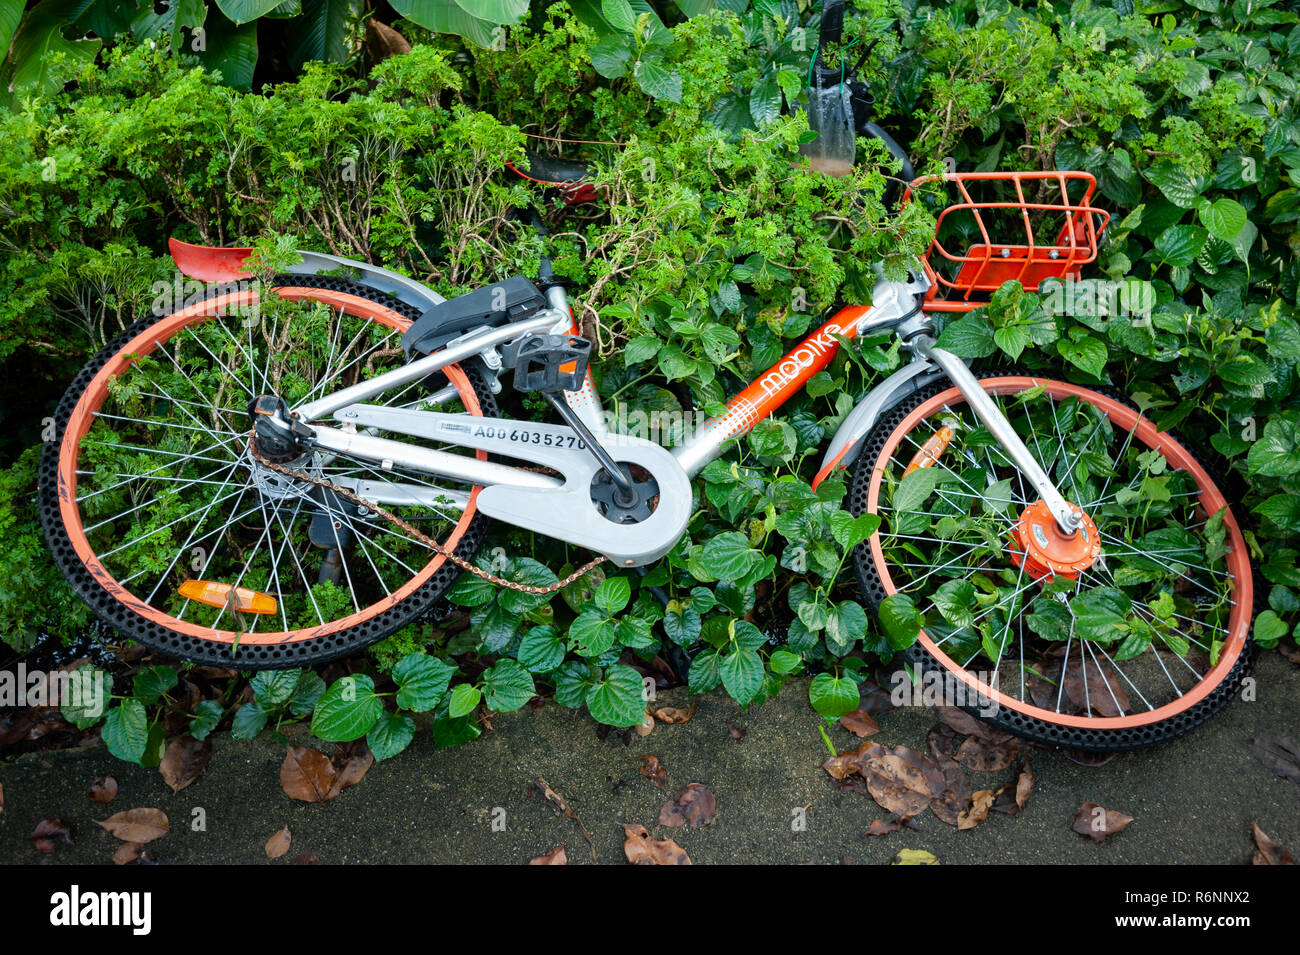 29.11.2018, Singapore, Republic of Singapore, Asia - A broken rental bike from the provider Mobike is lying on the ground next to a sidewalk. - Stock Image